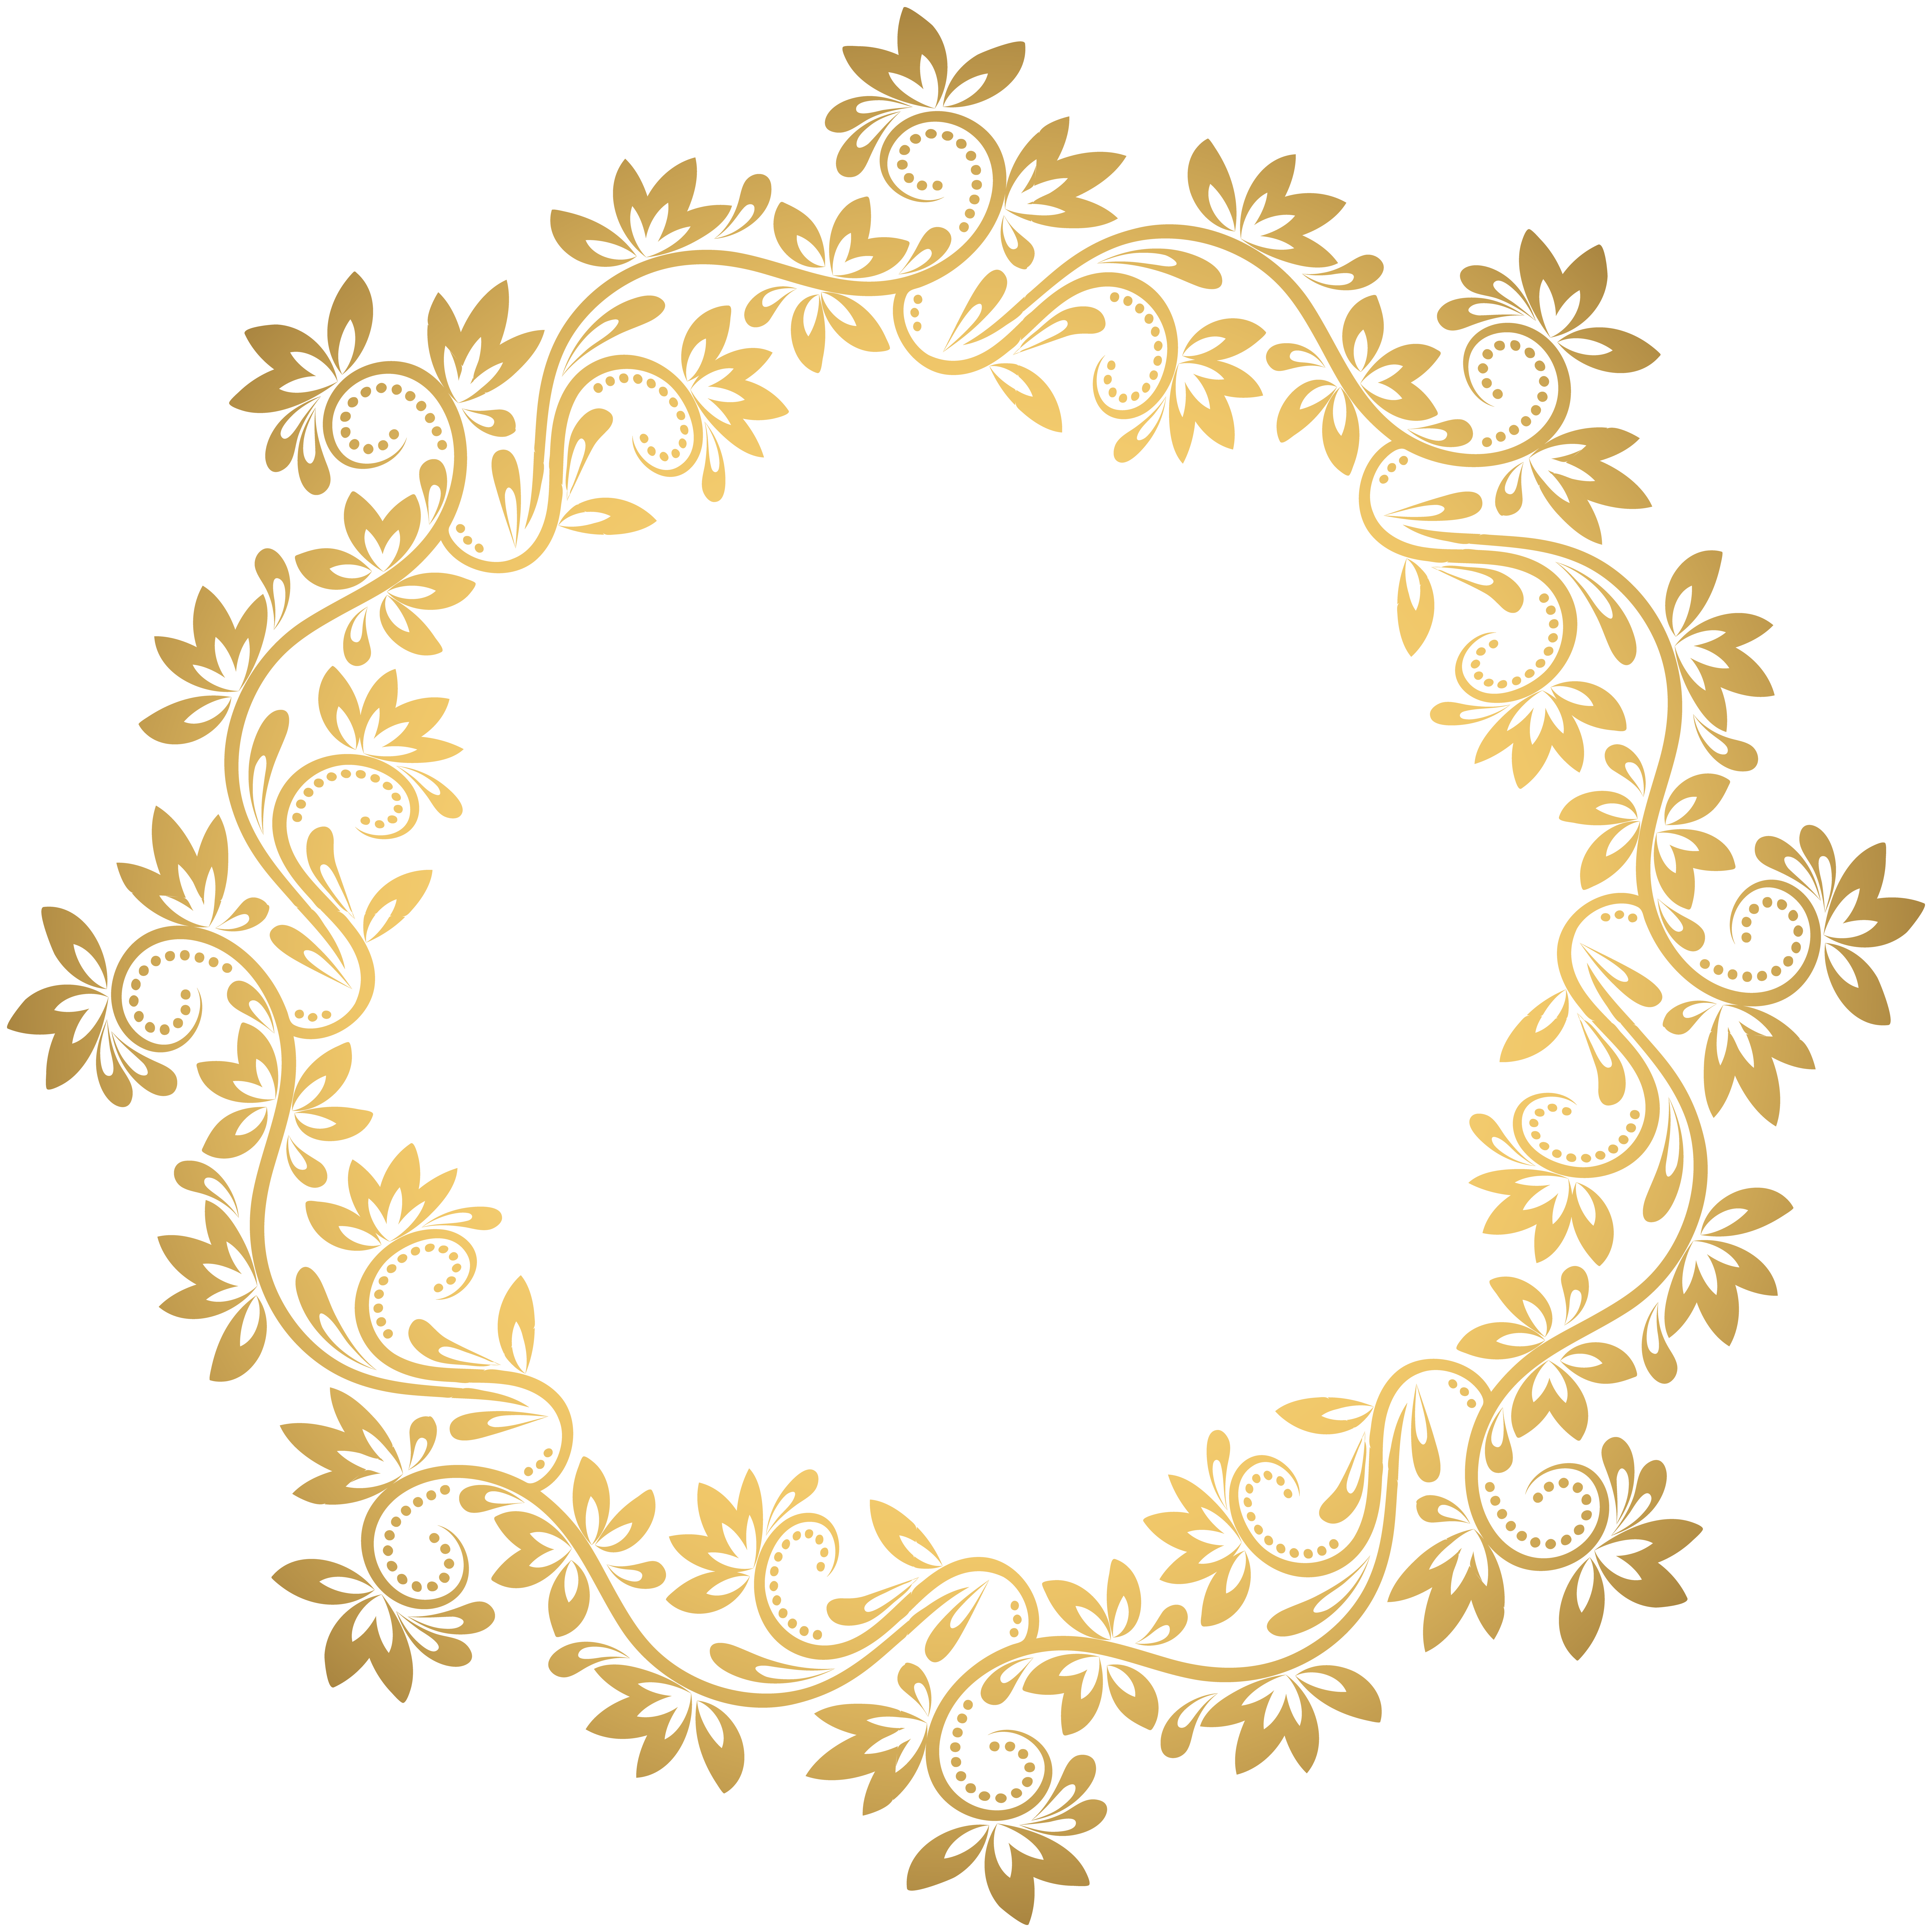 Gold Deco Round Border Png Transparent Clip Art Gallery Yopriceville High Quality Images And Transparent Png Free Clip Art Borders Clip Art Free Clip Art